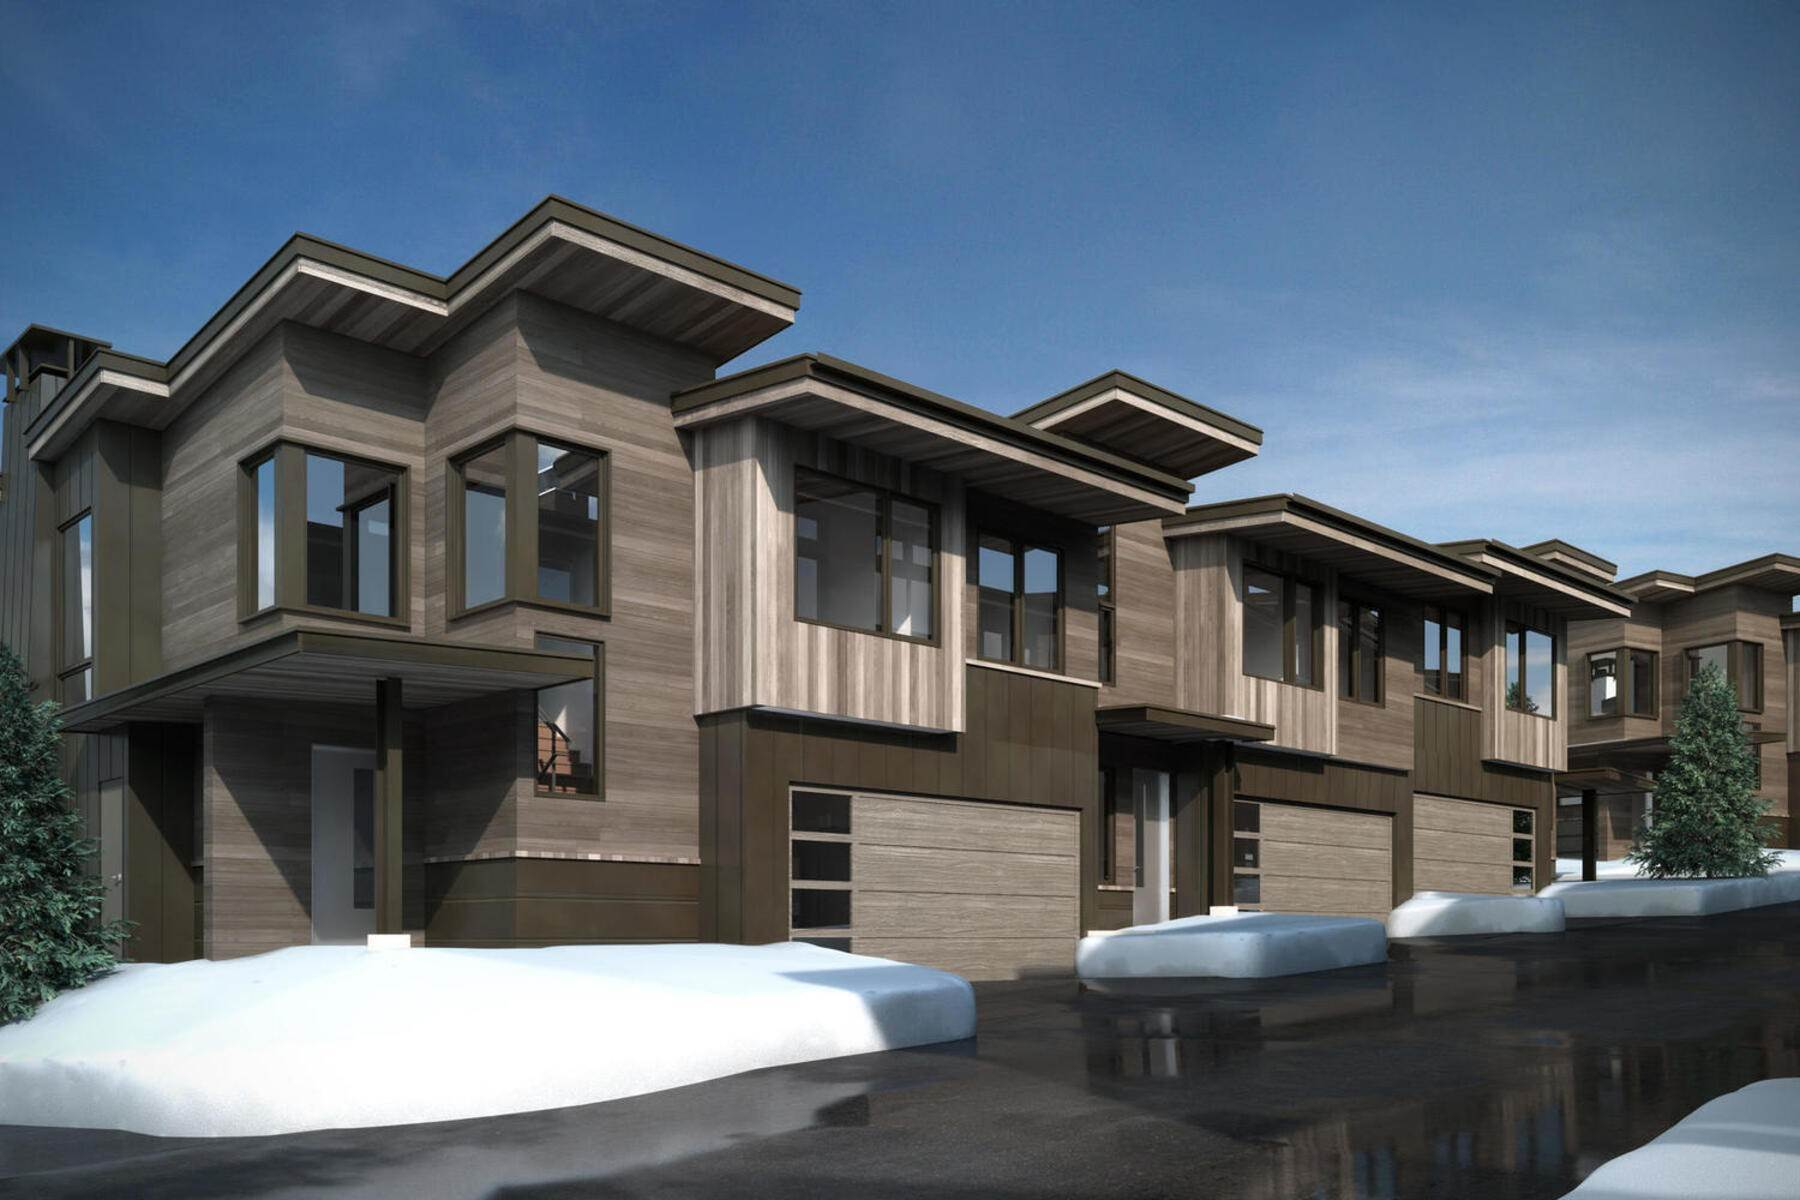 6. townhouses for Sale at Ski-In Townhomes in Canyons Village 3532 Ridgeline Drive Park City, Utah 84098 United States